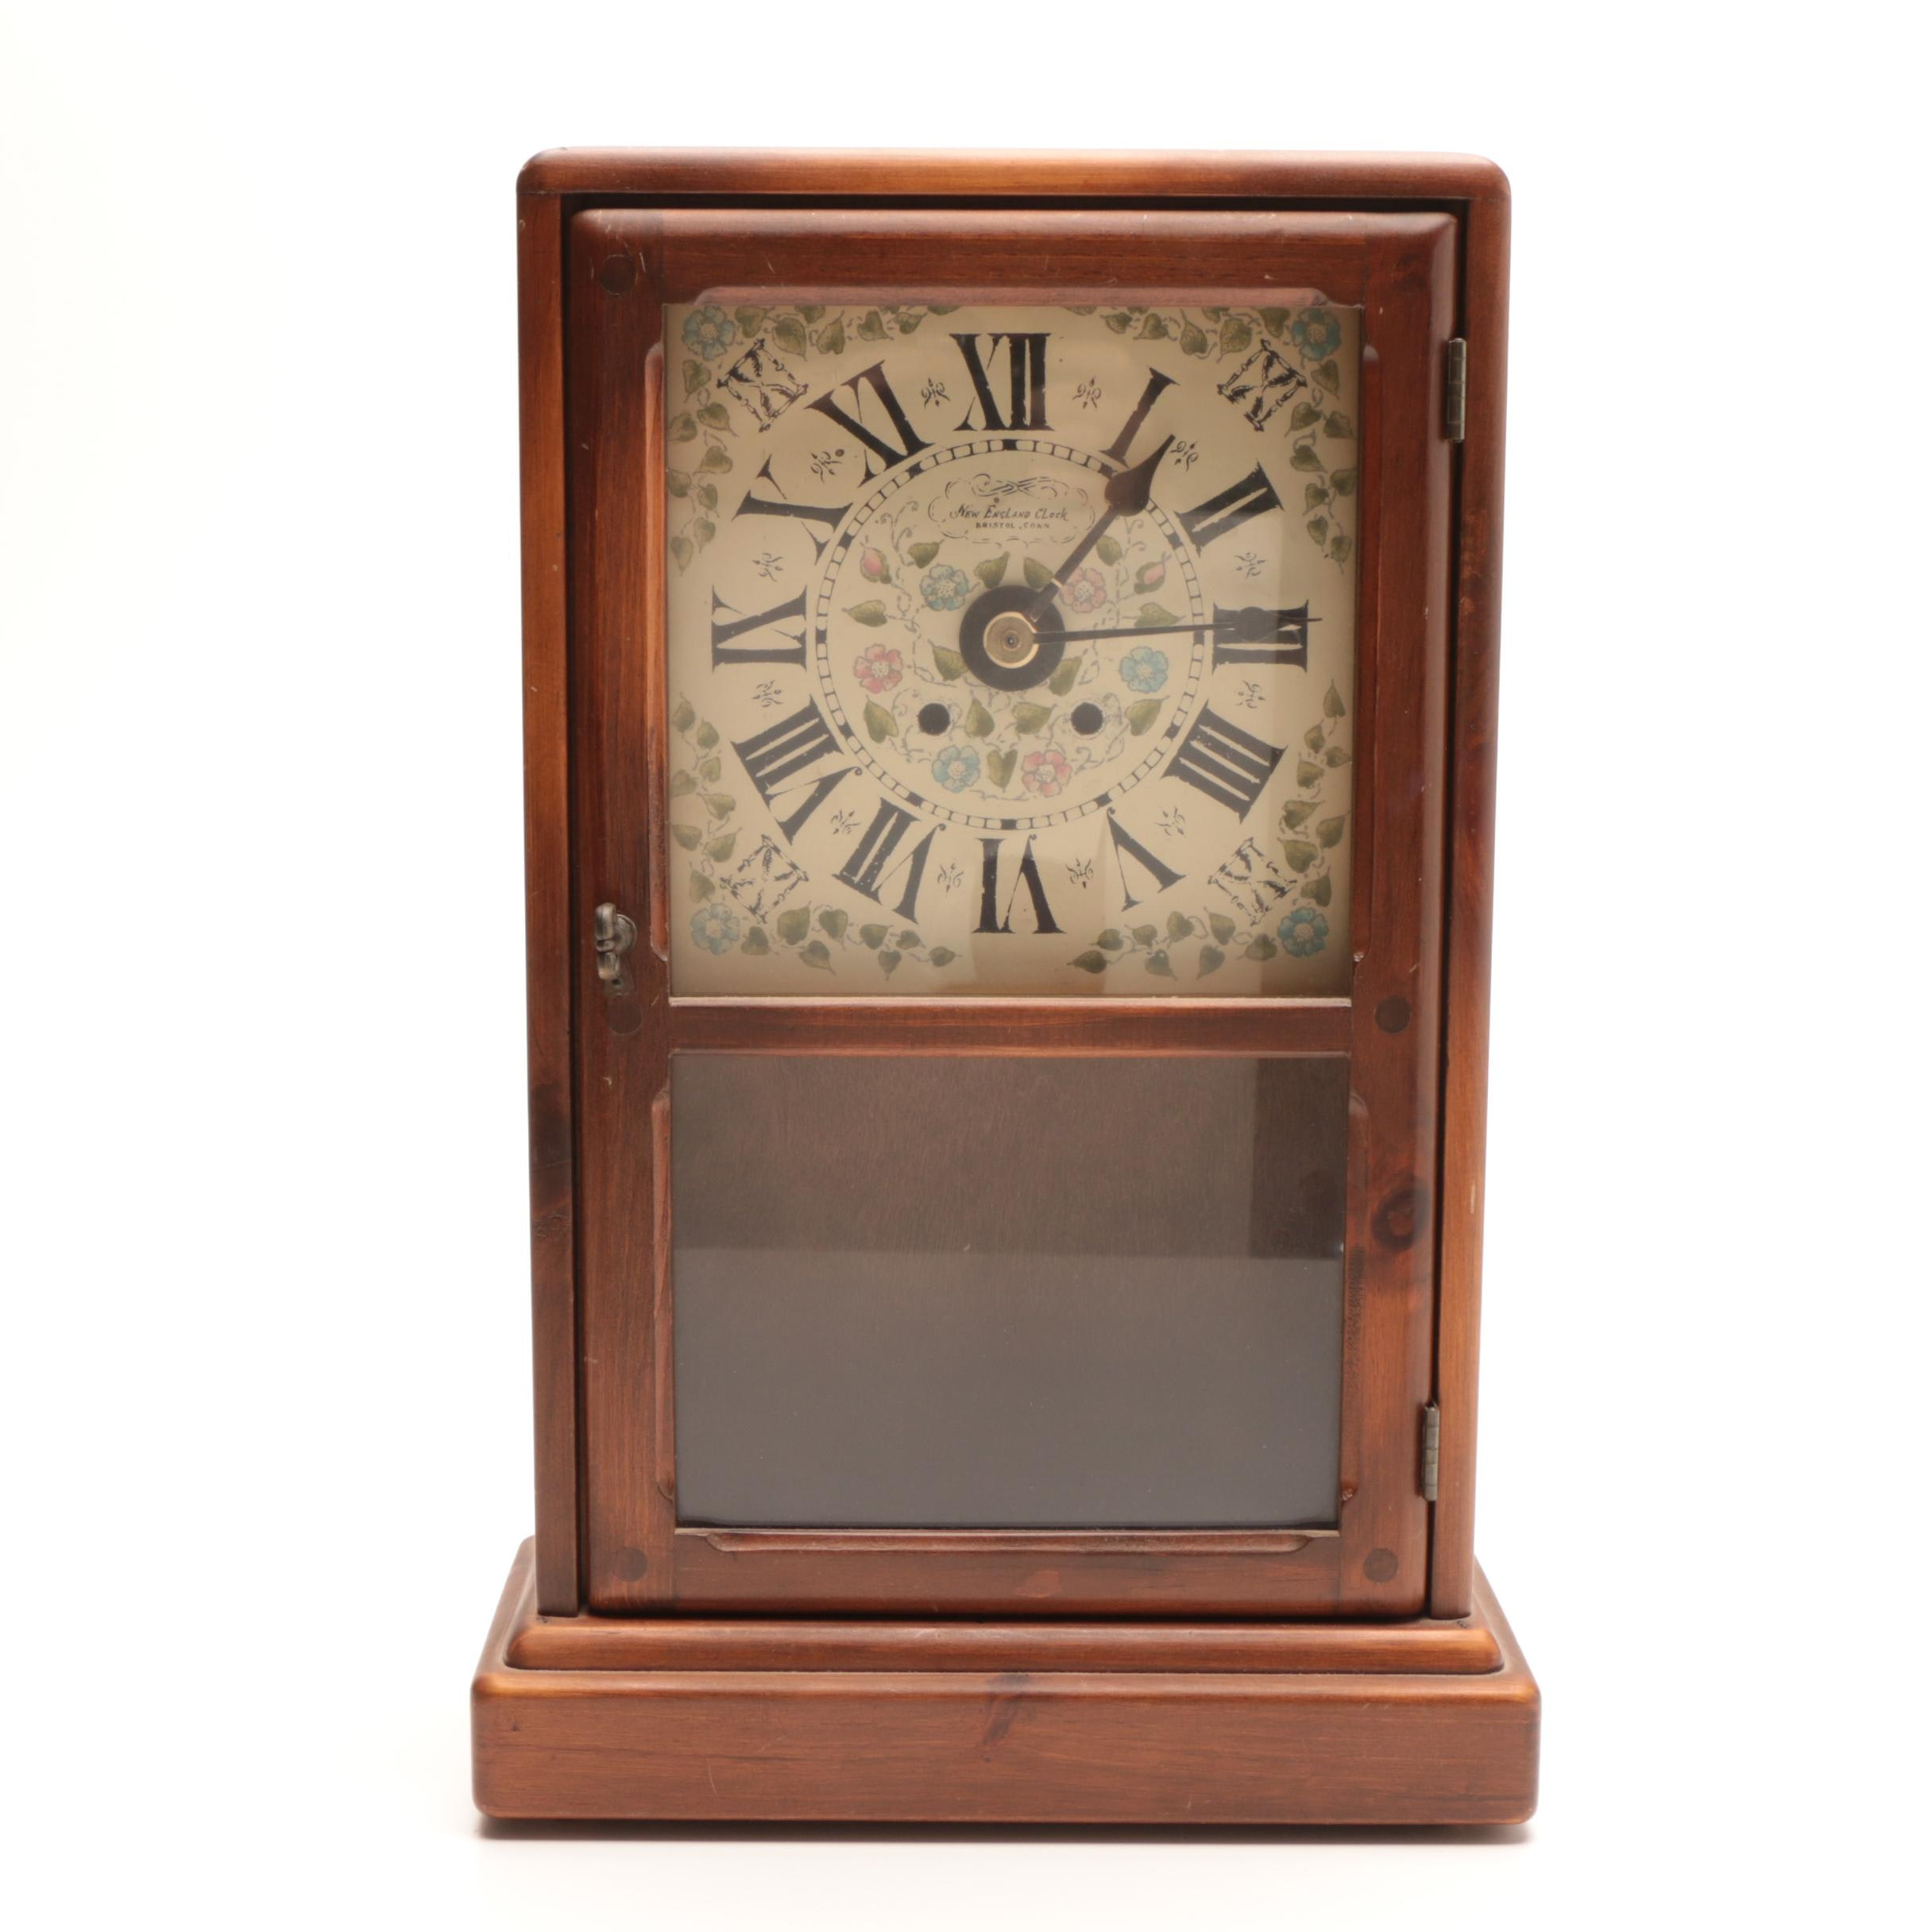 1960's Decorative Battery Operated Clock with Cabinet